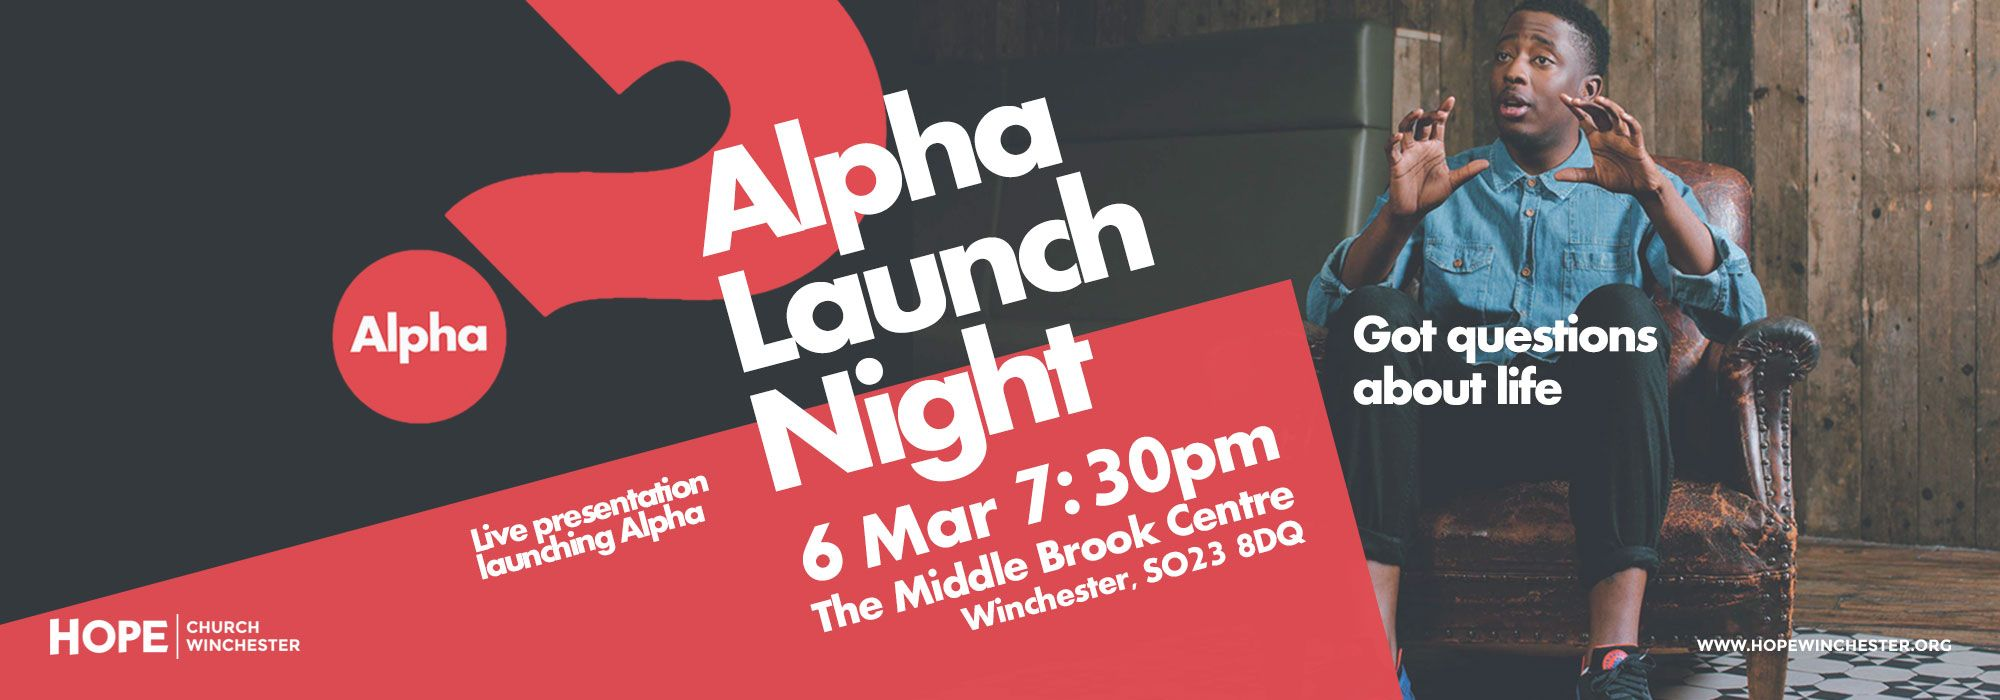 Got questions about life? Our Alpha Launch Night is coming up on 6th March at 7:30. http://www.hopewinchester.org/calendar/alpha-launch-night